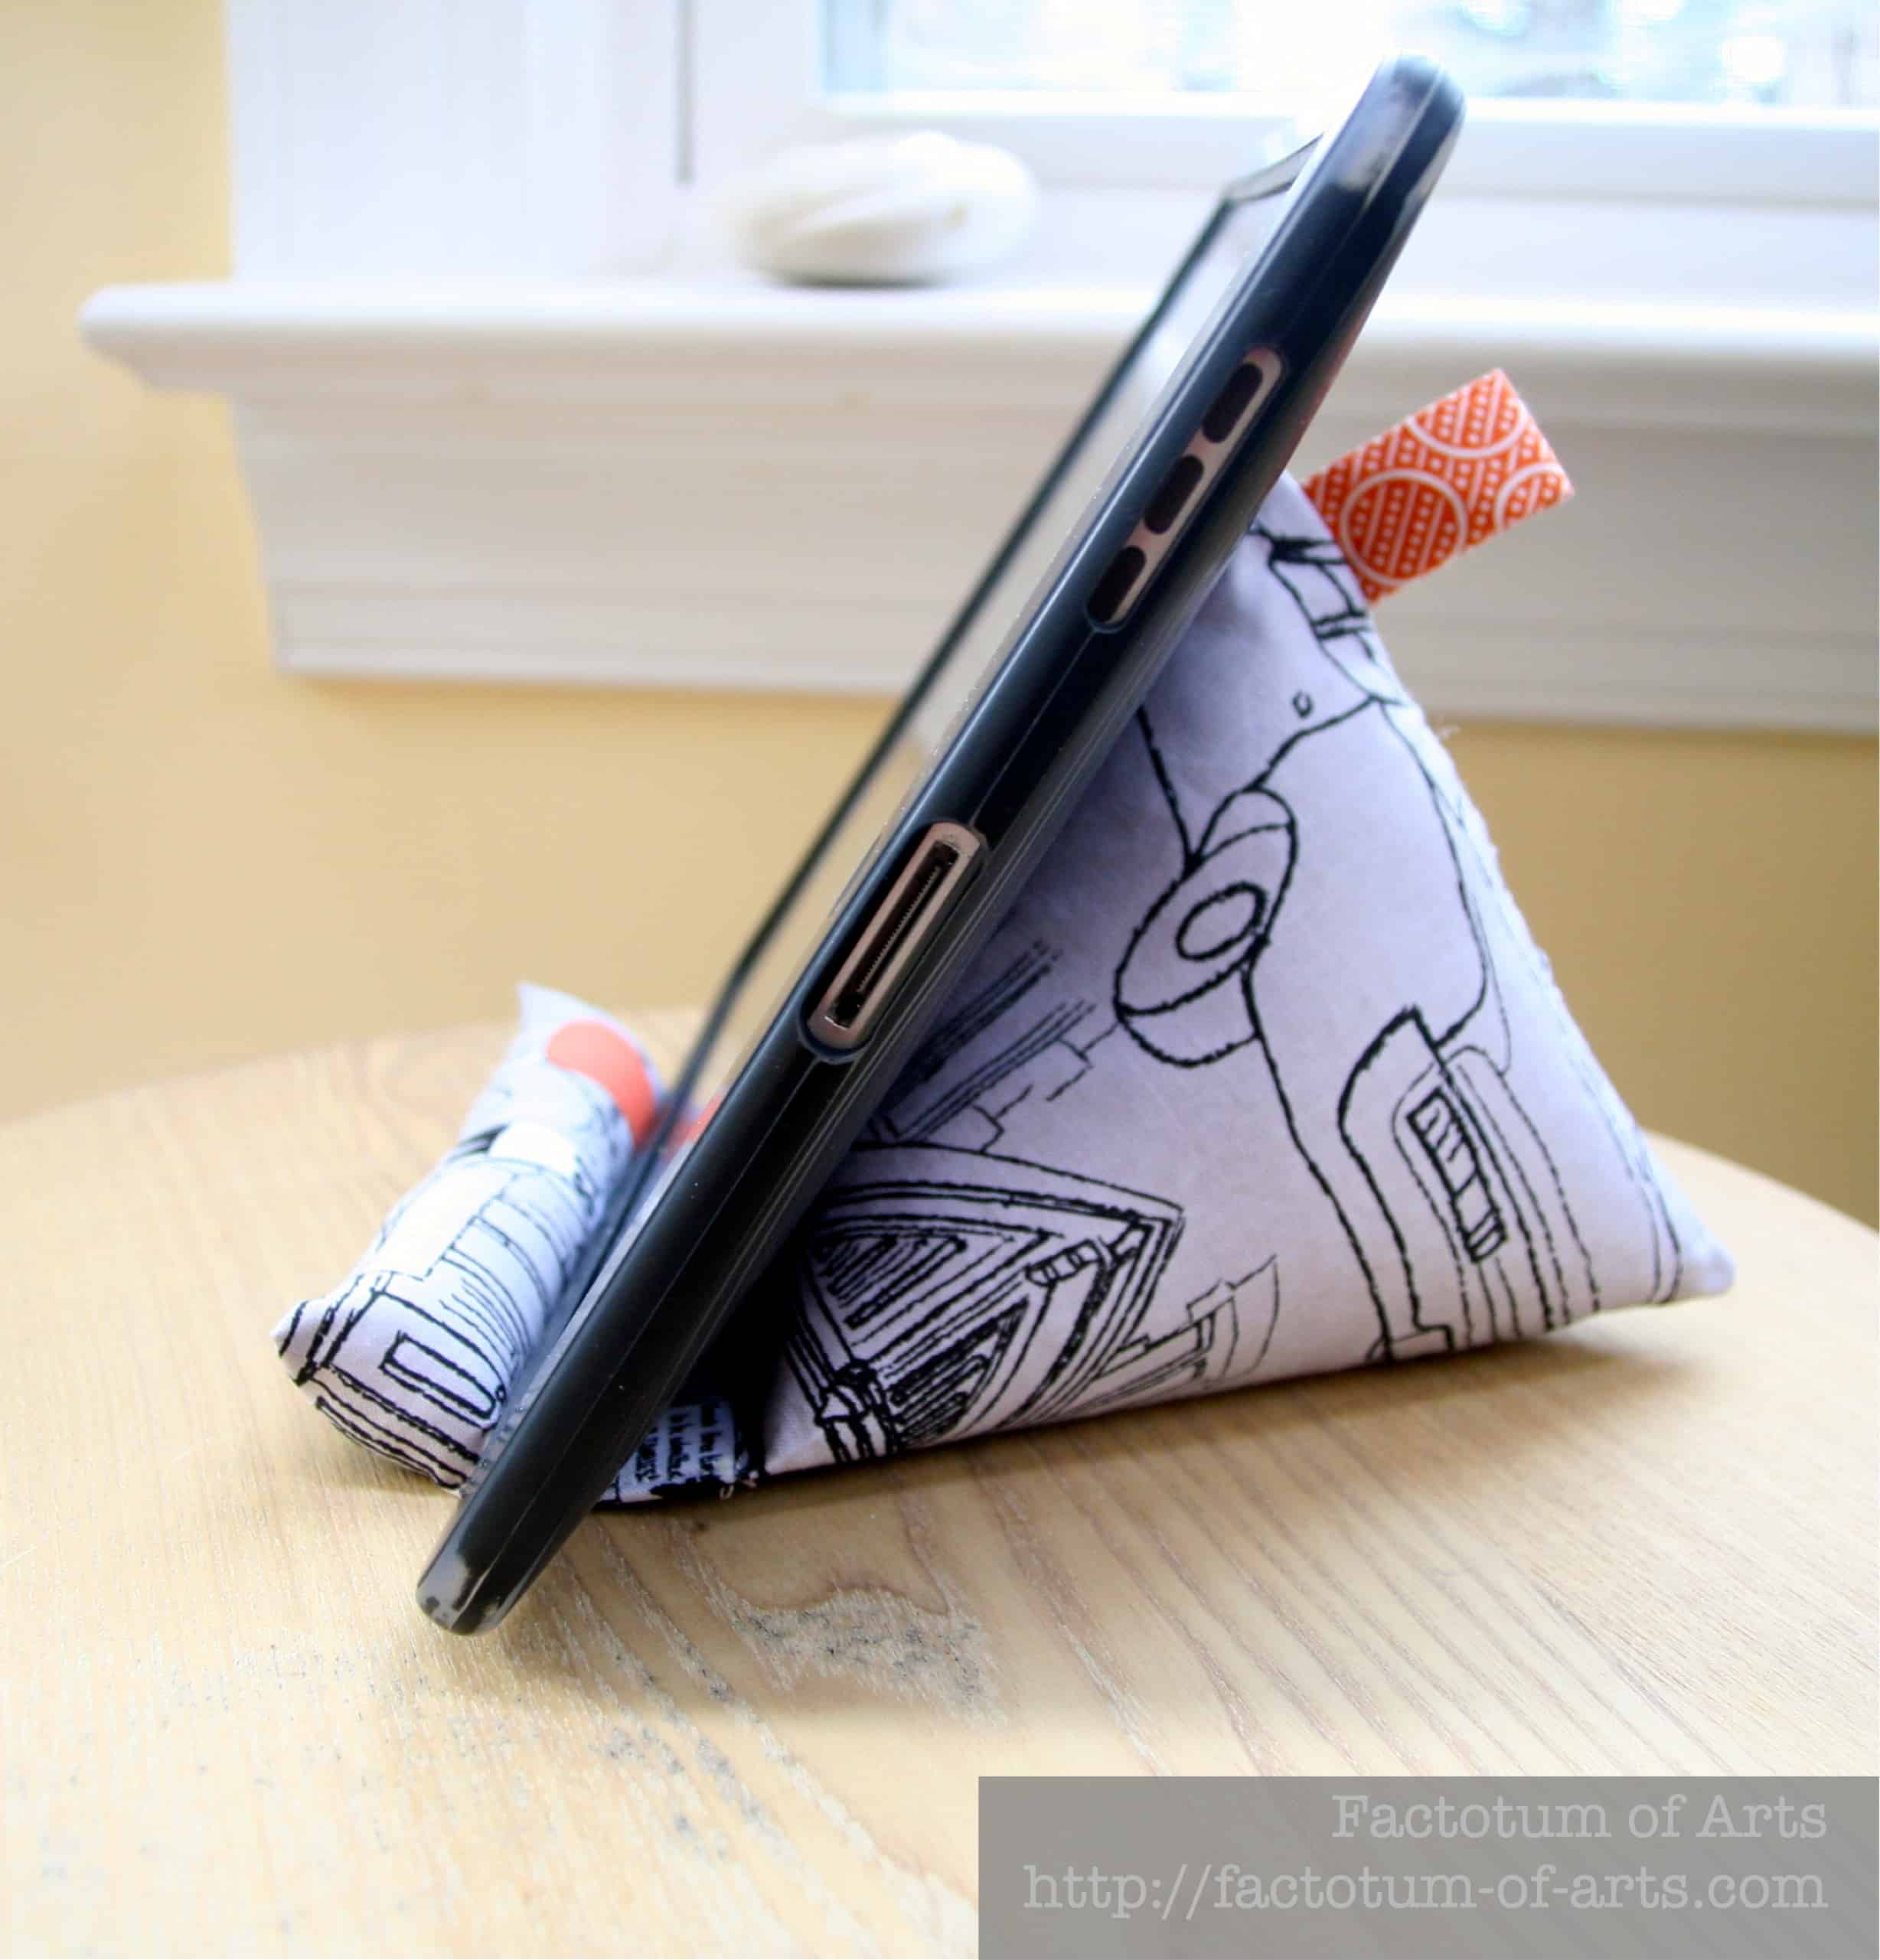 Home sewn beanbag tablet stand